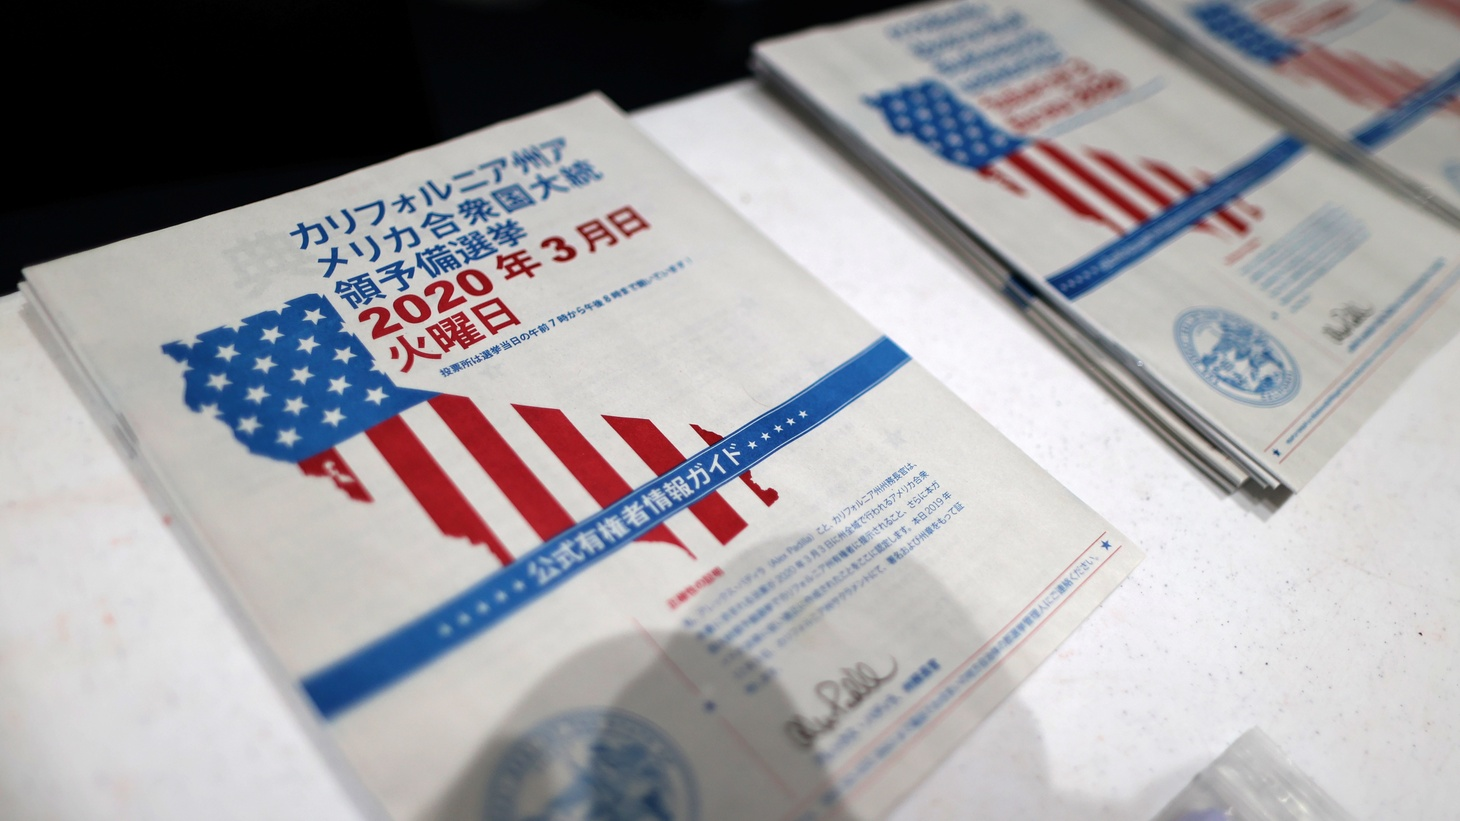 Voter guides in multiple languages are seen at a polling station on Super Tuesday in Santa Monica, California, U.S., March 3, 2020.